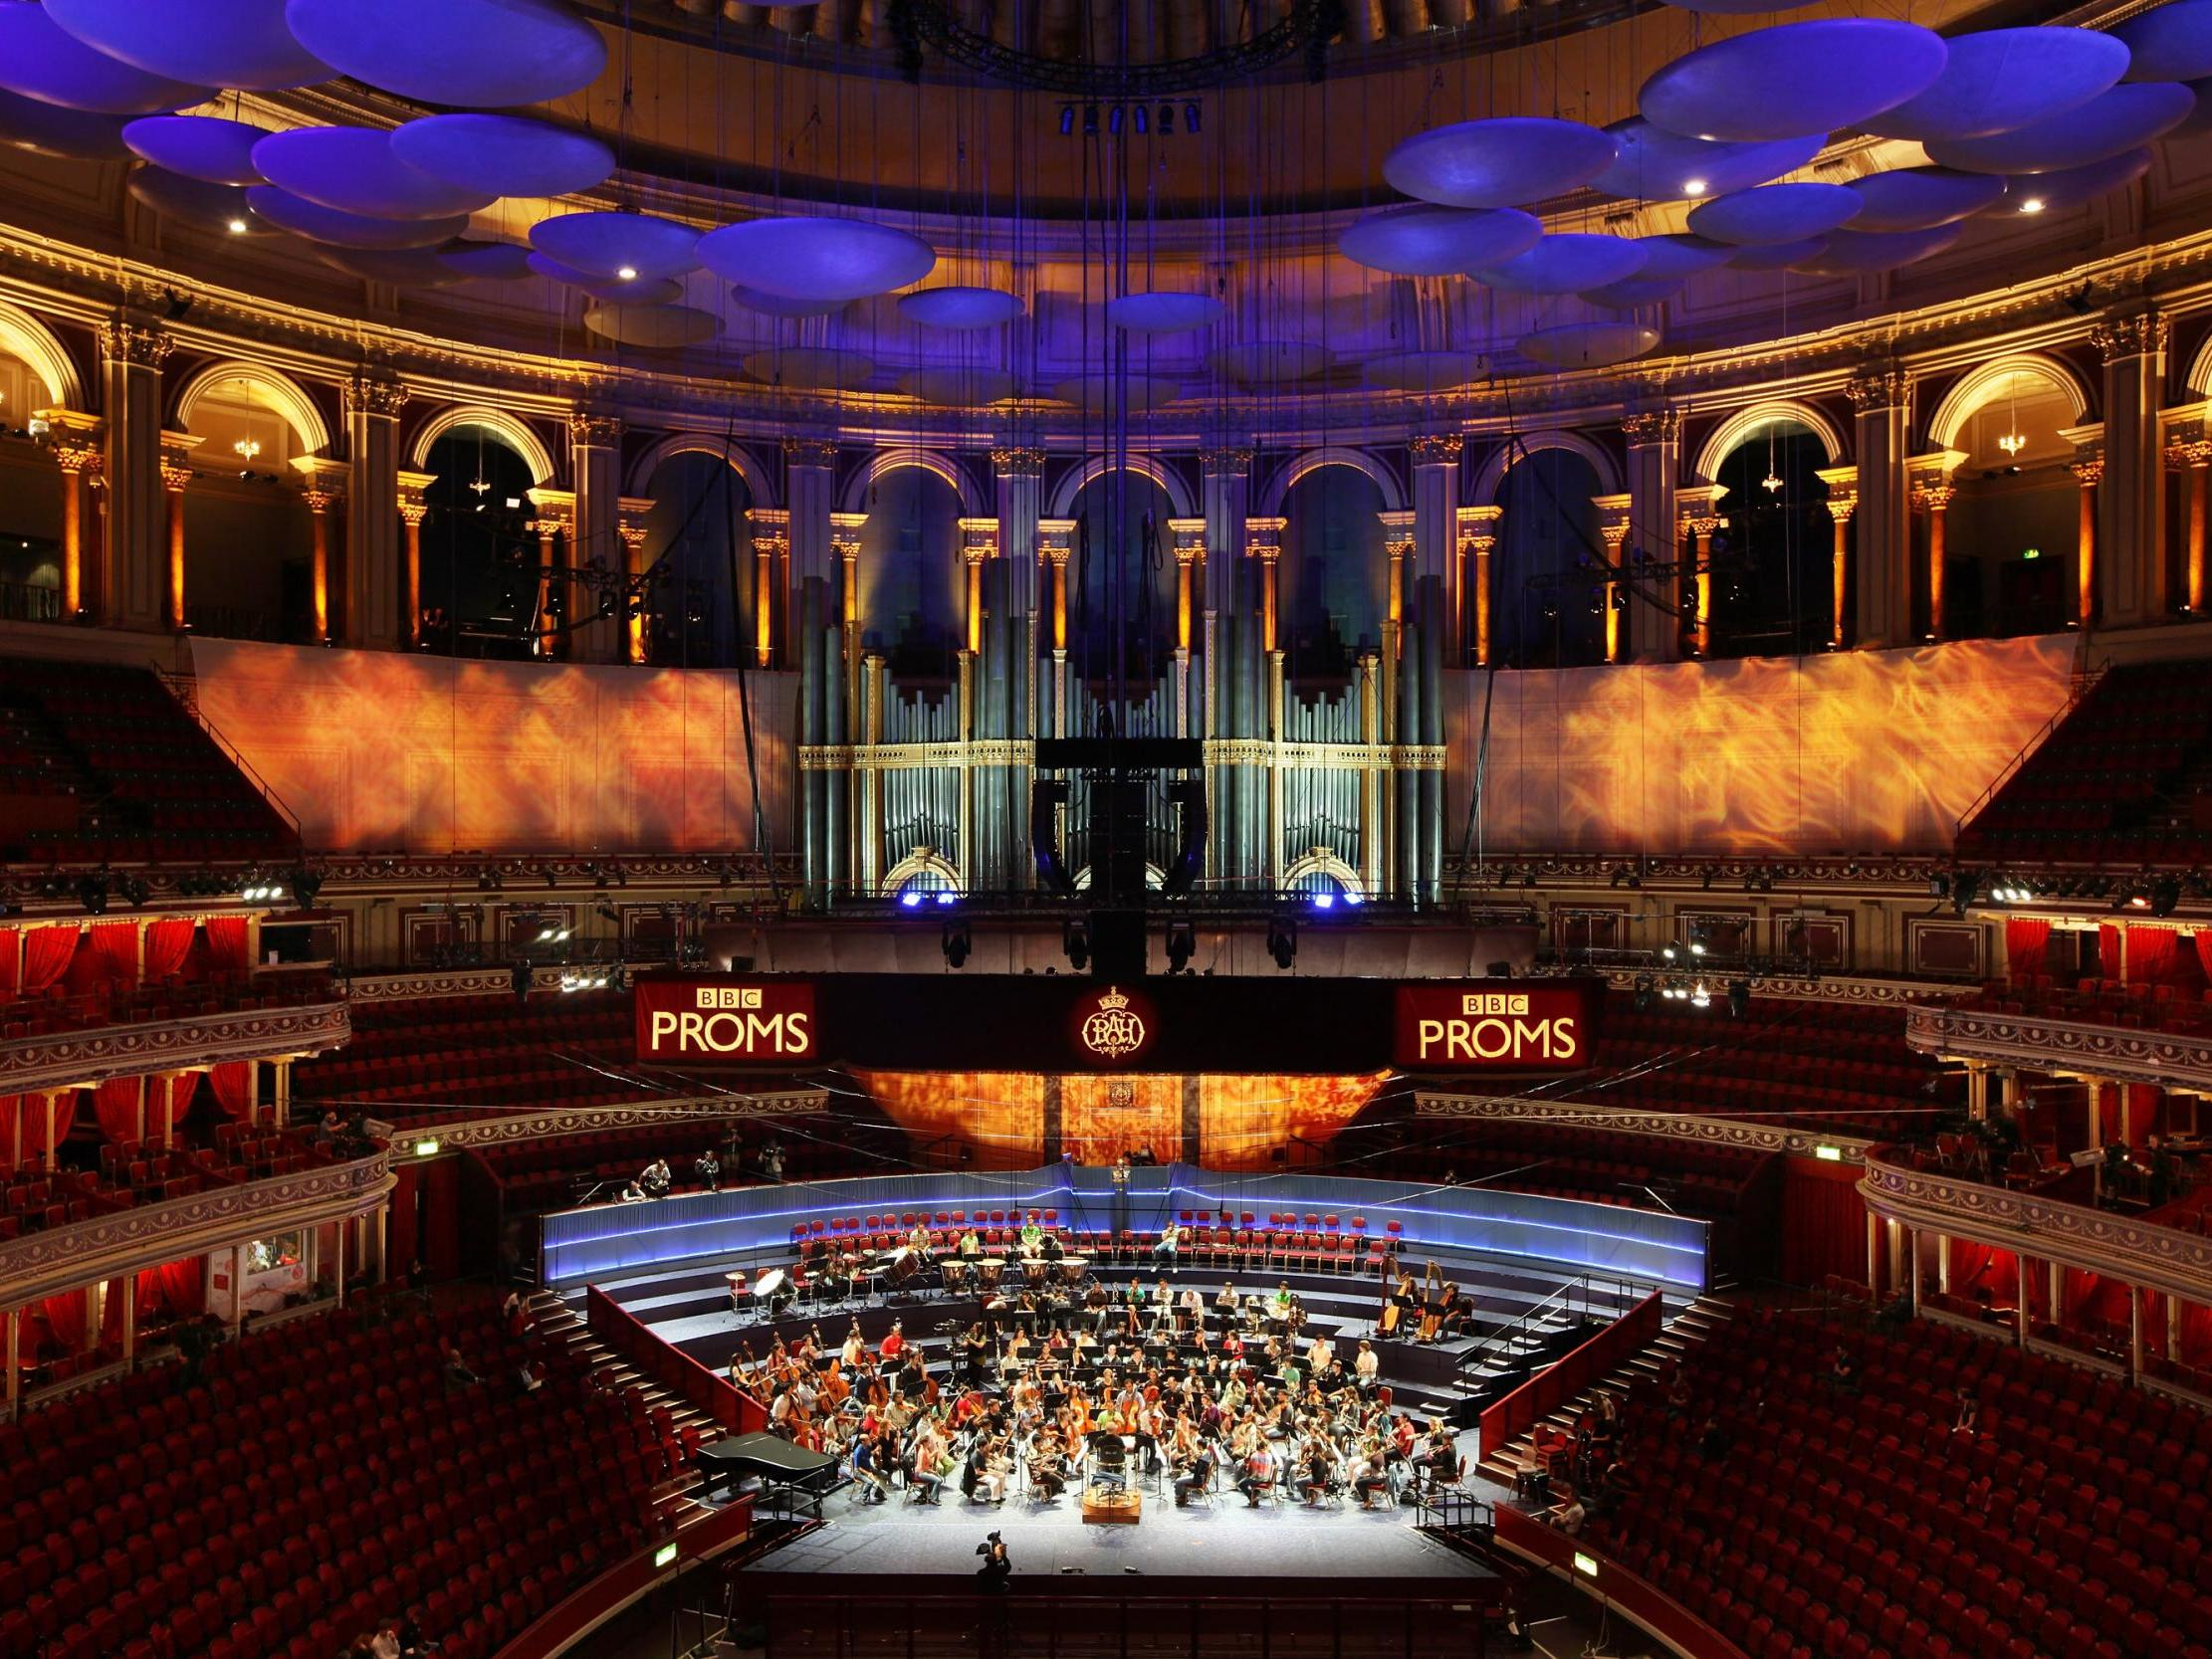 BBC Proms 2020 arranging 'multiple programmes'